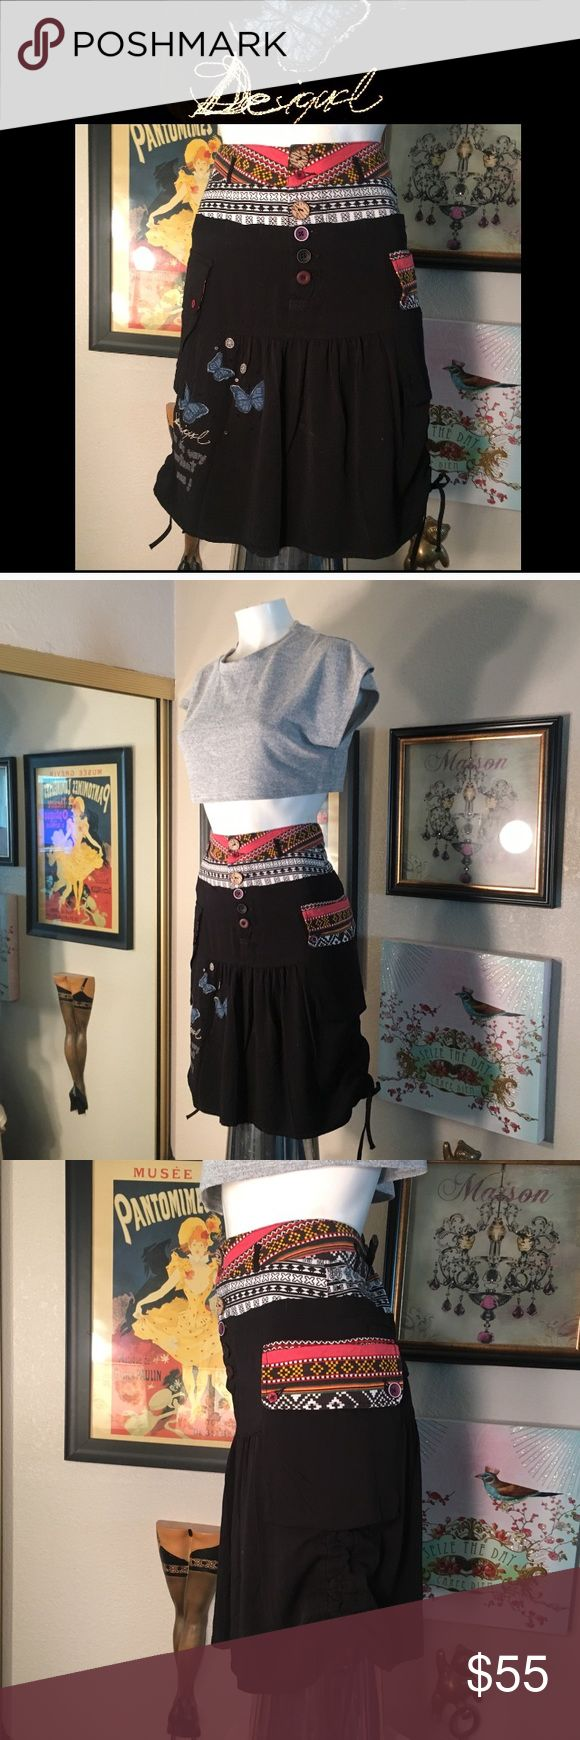 🦋Desigual skirt 🦋 NEW in Perfect Condition.  100% Authentic Desigual skirt button front, side pocket, sides gathers. Looks really cute on unfortunately it's too small for me, size 34 European fifth like a size 2 USA Desigual Skirts